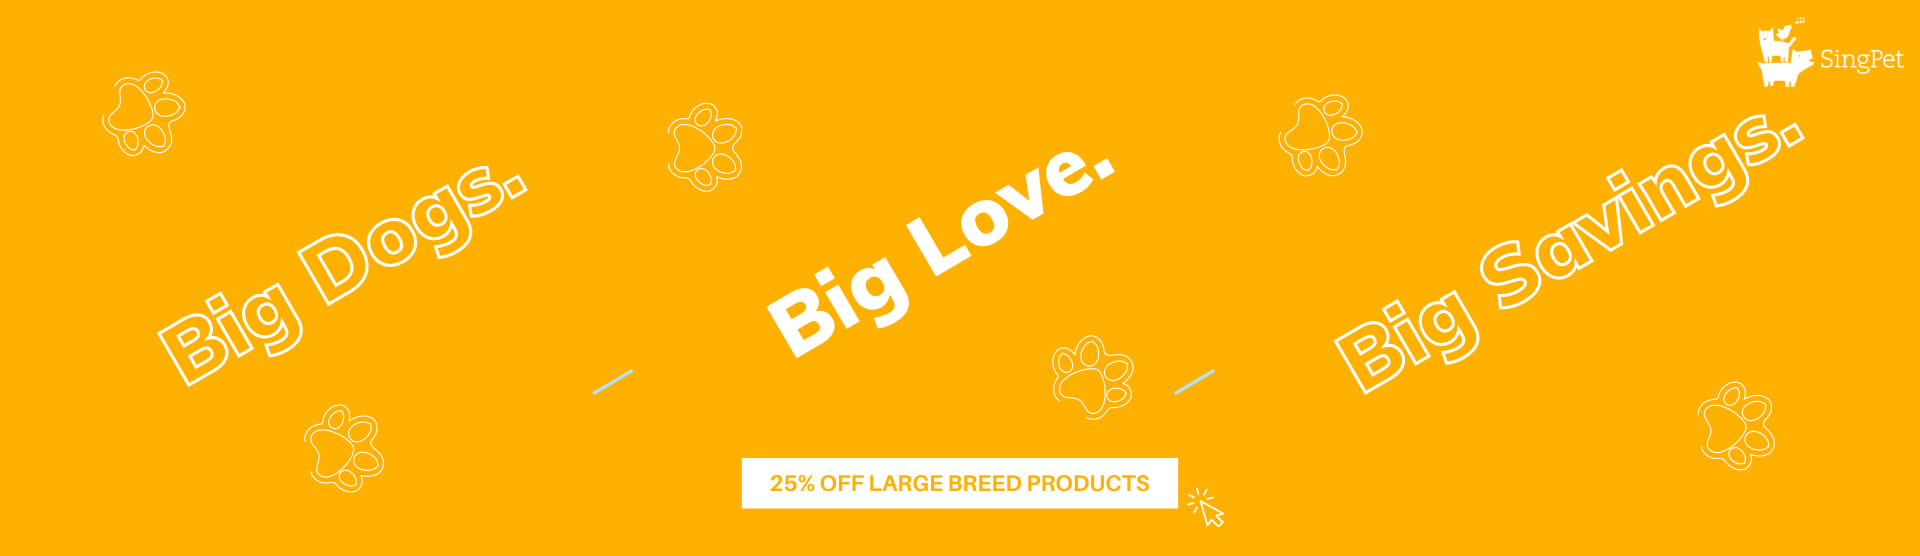 25% off large breed products